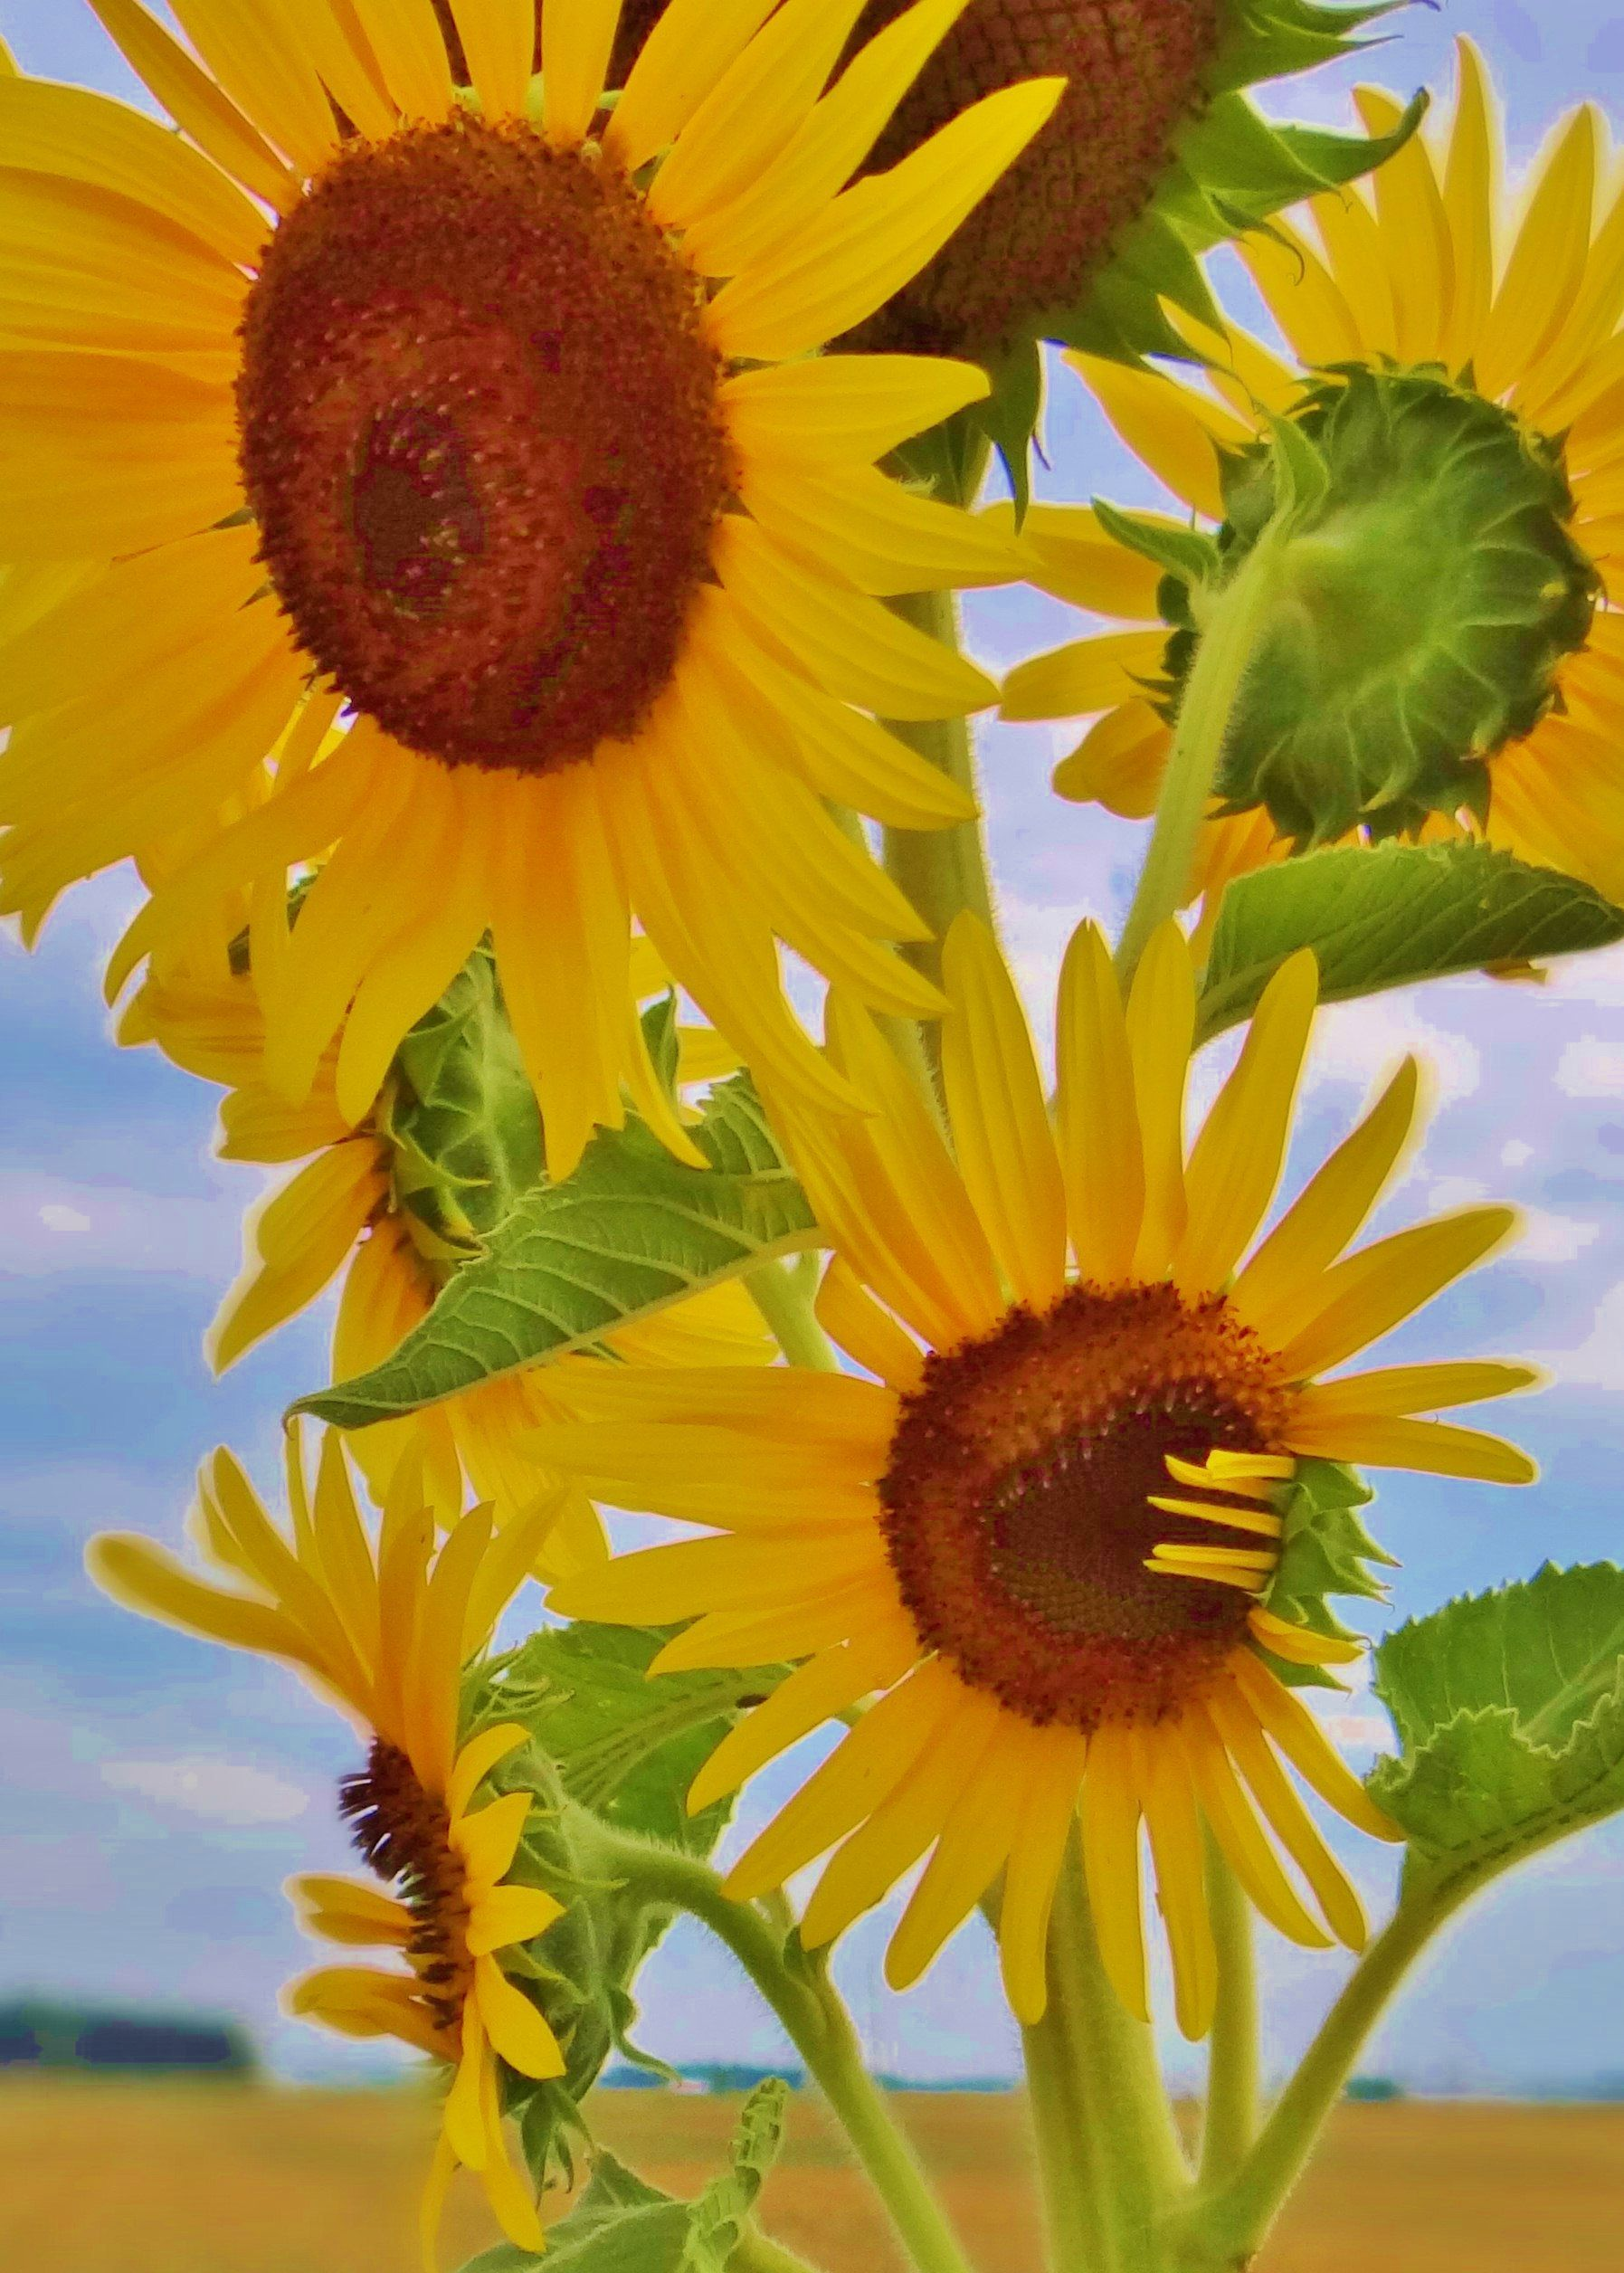 Beautiful Sunflowers Against The Blue Sky By K Mericle Adkins